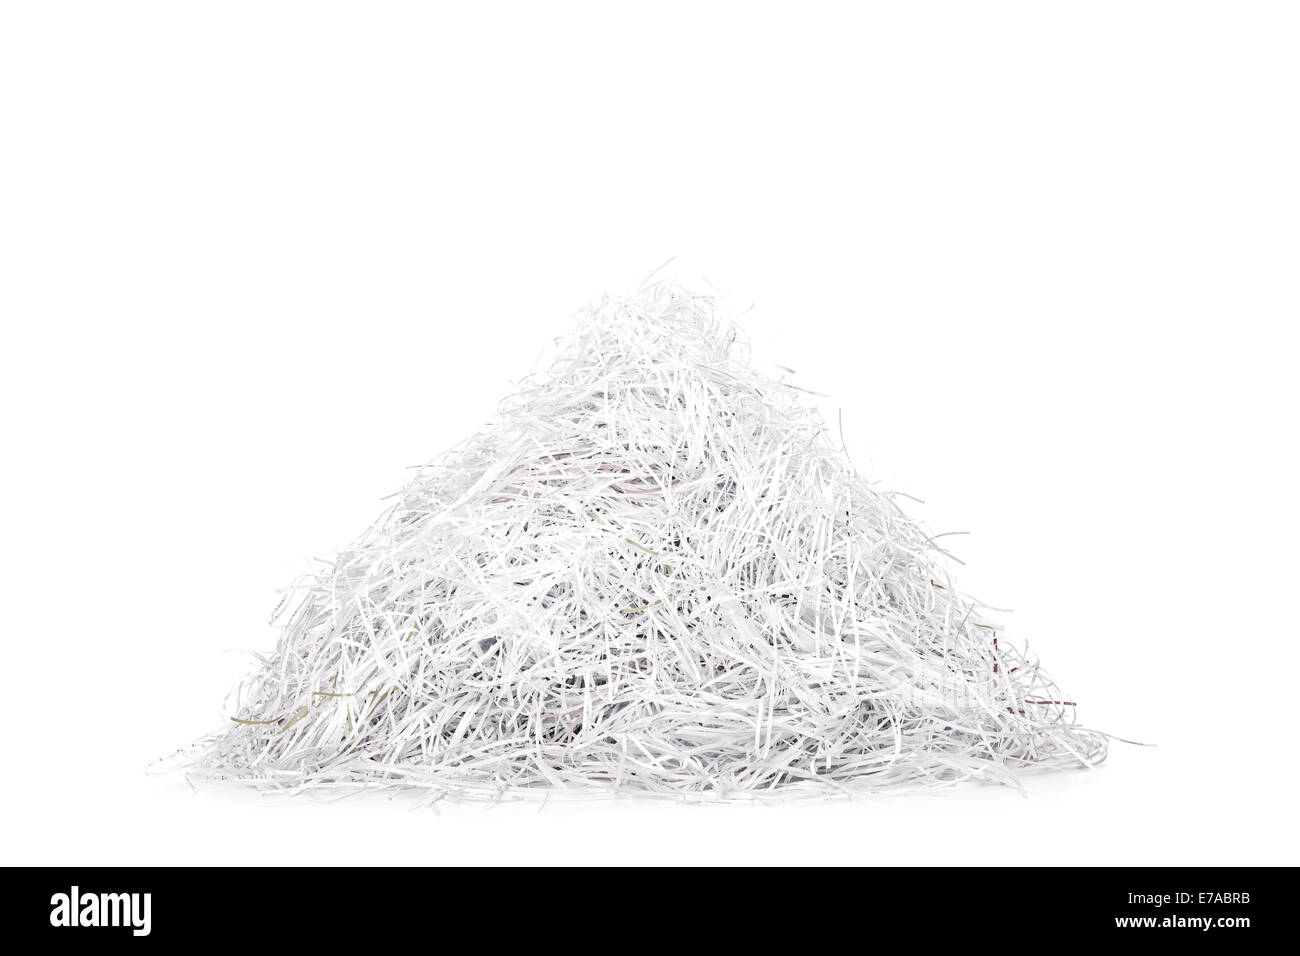 Studio shot of a pile of shredded paper isolated on white background - Stock Image